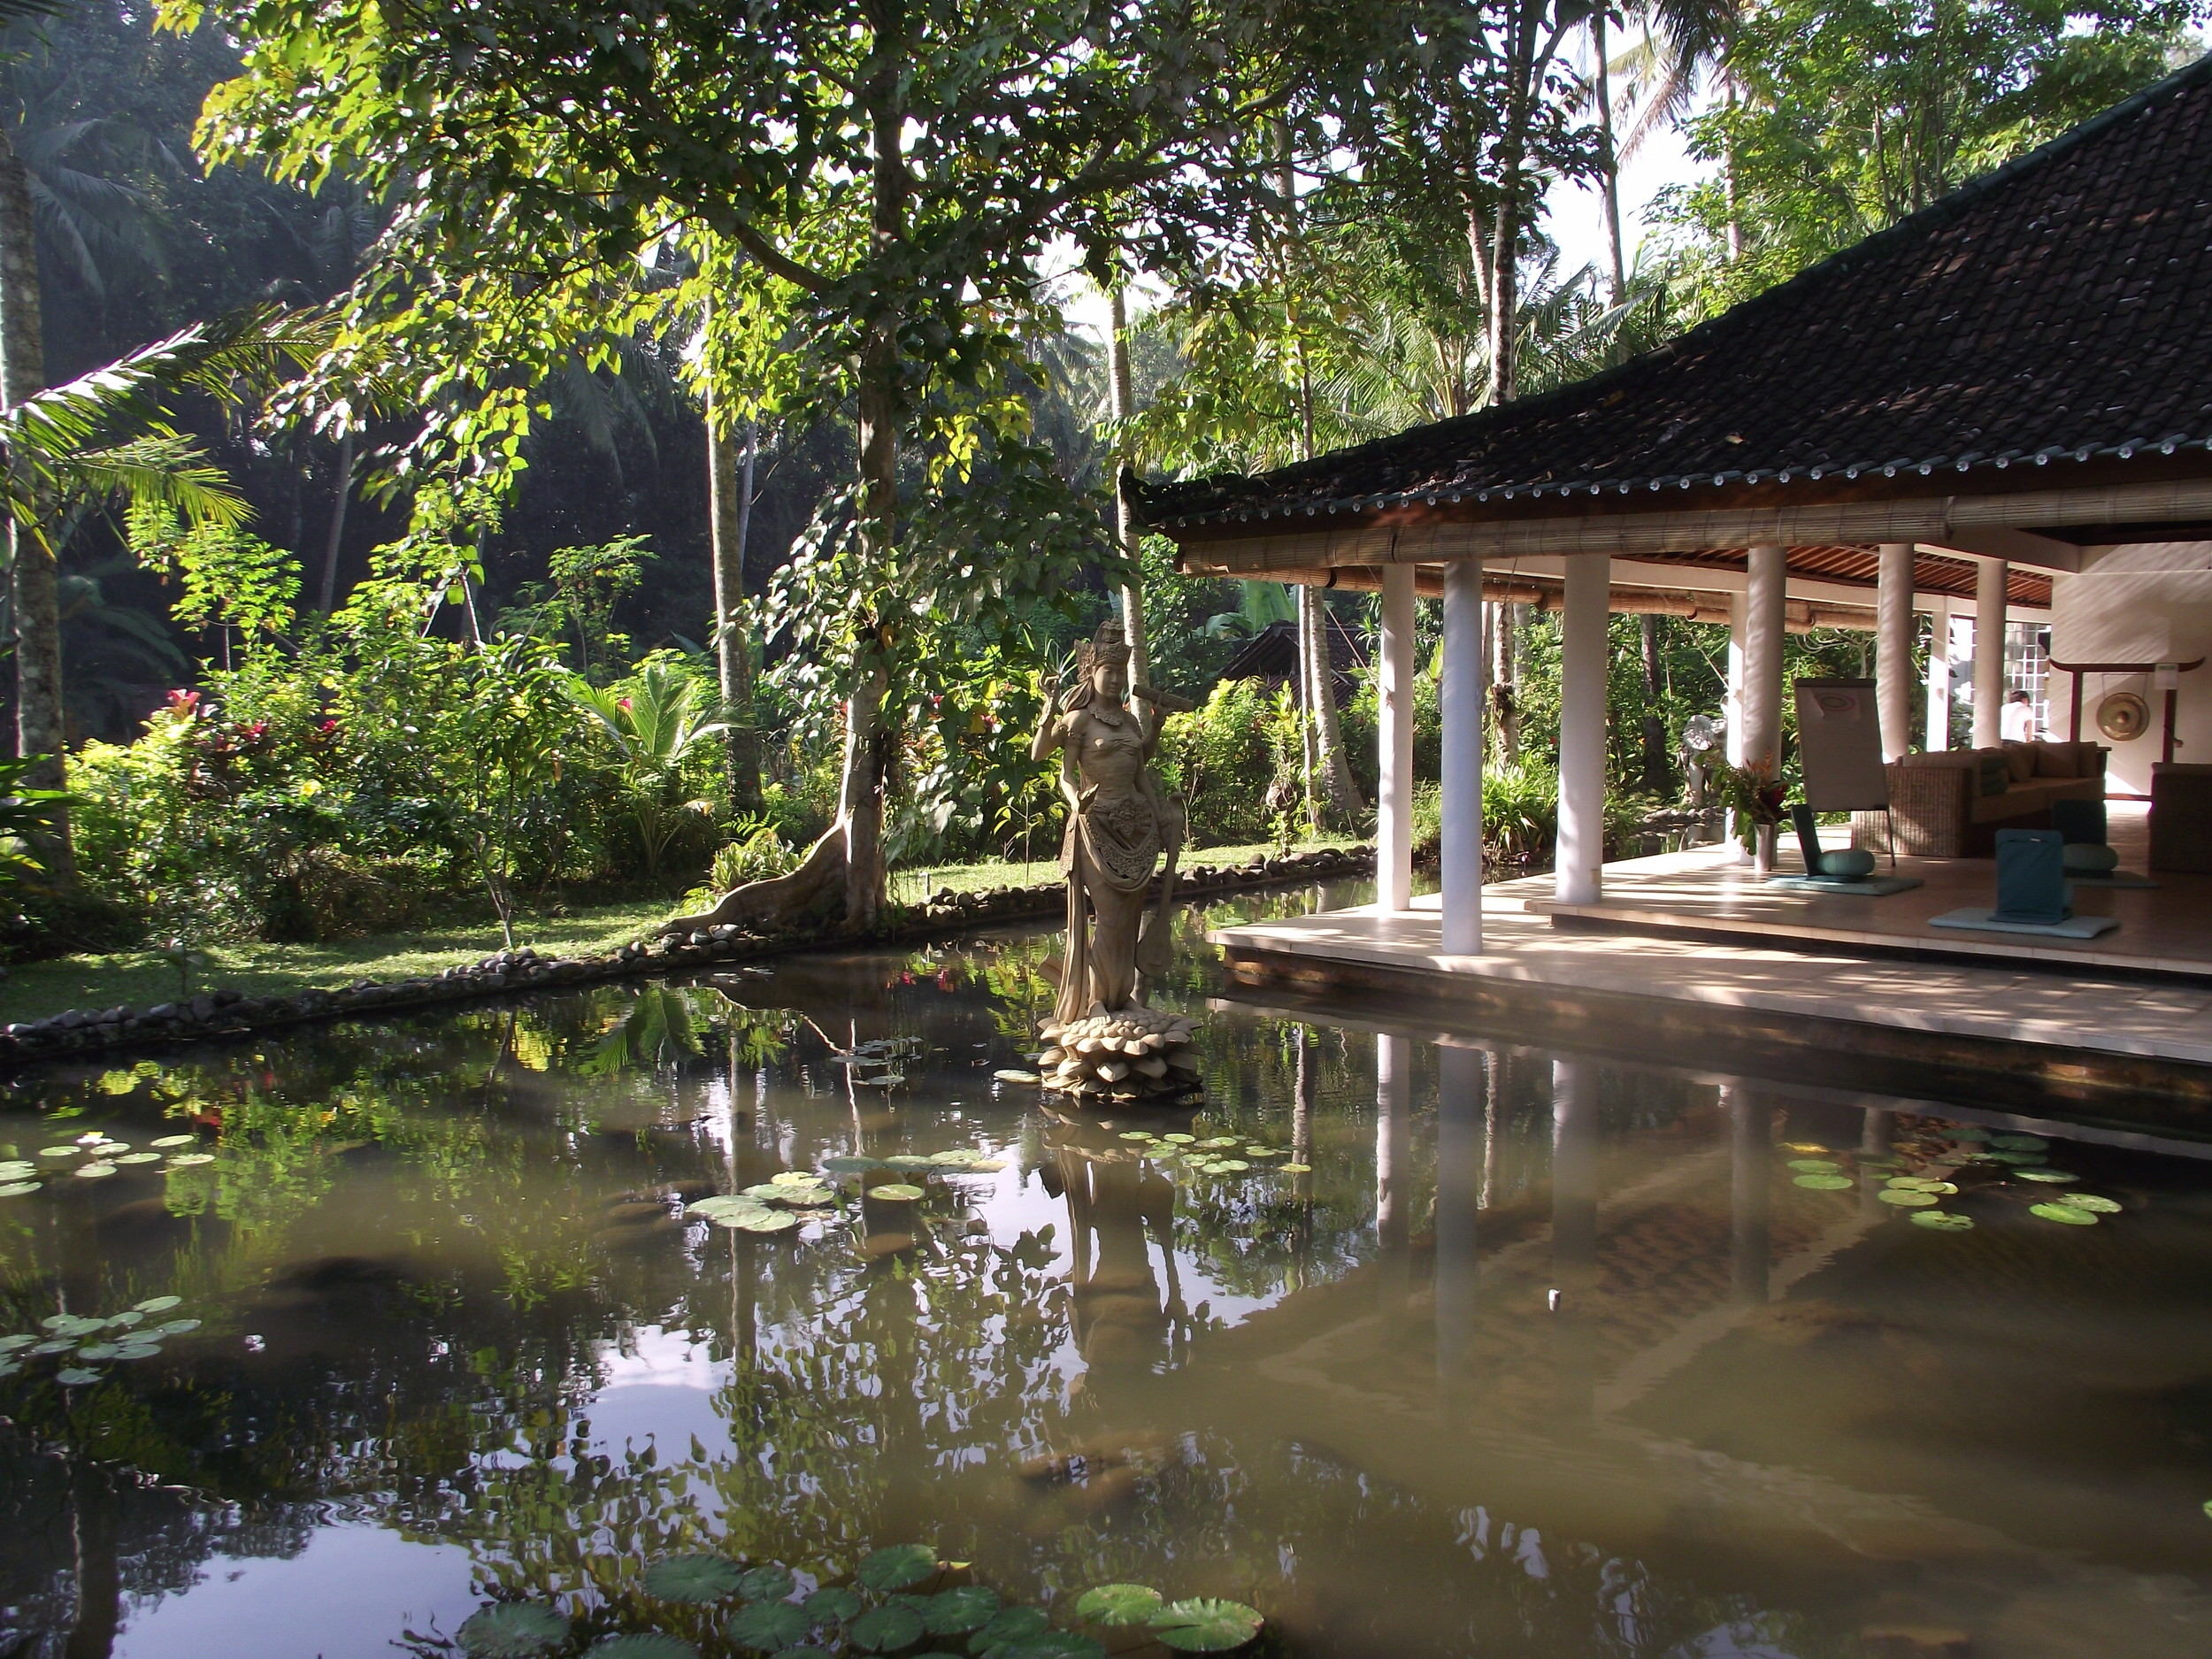 Pond at JIwa DAmai